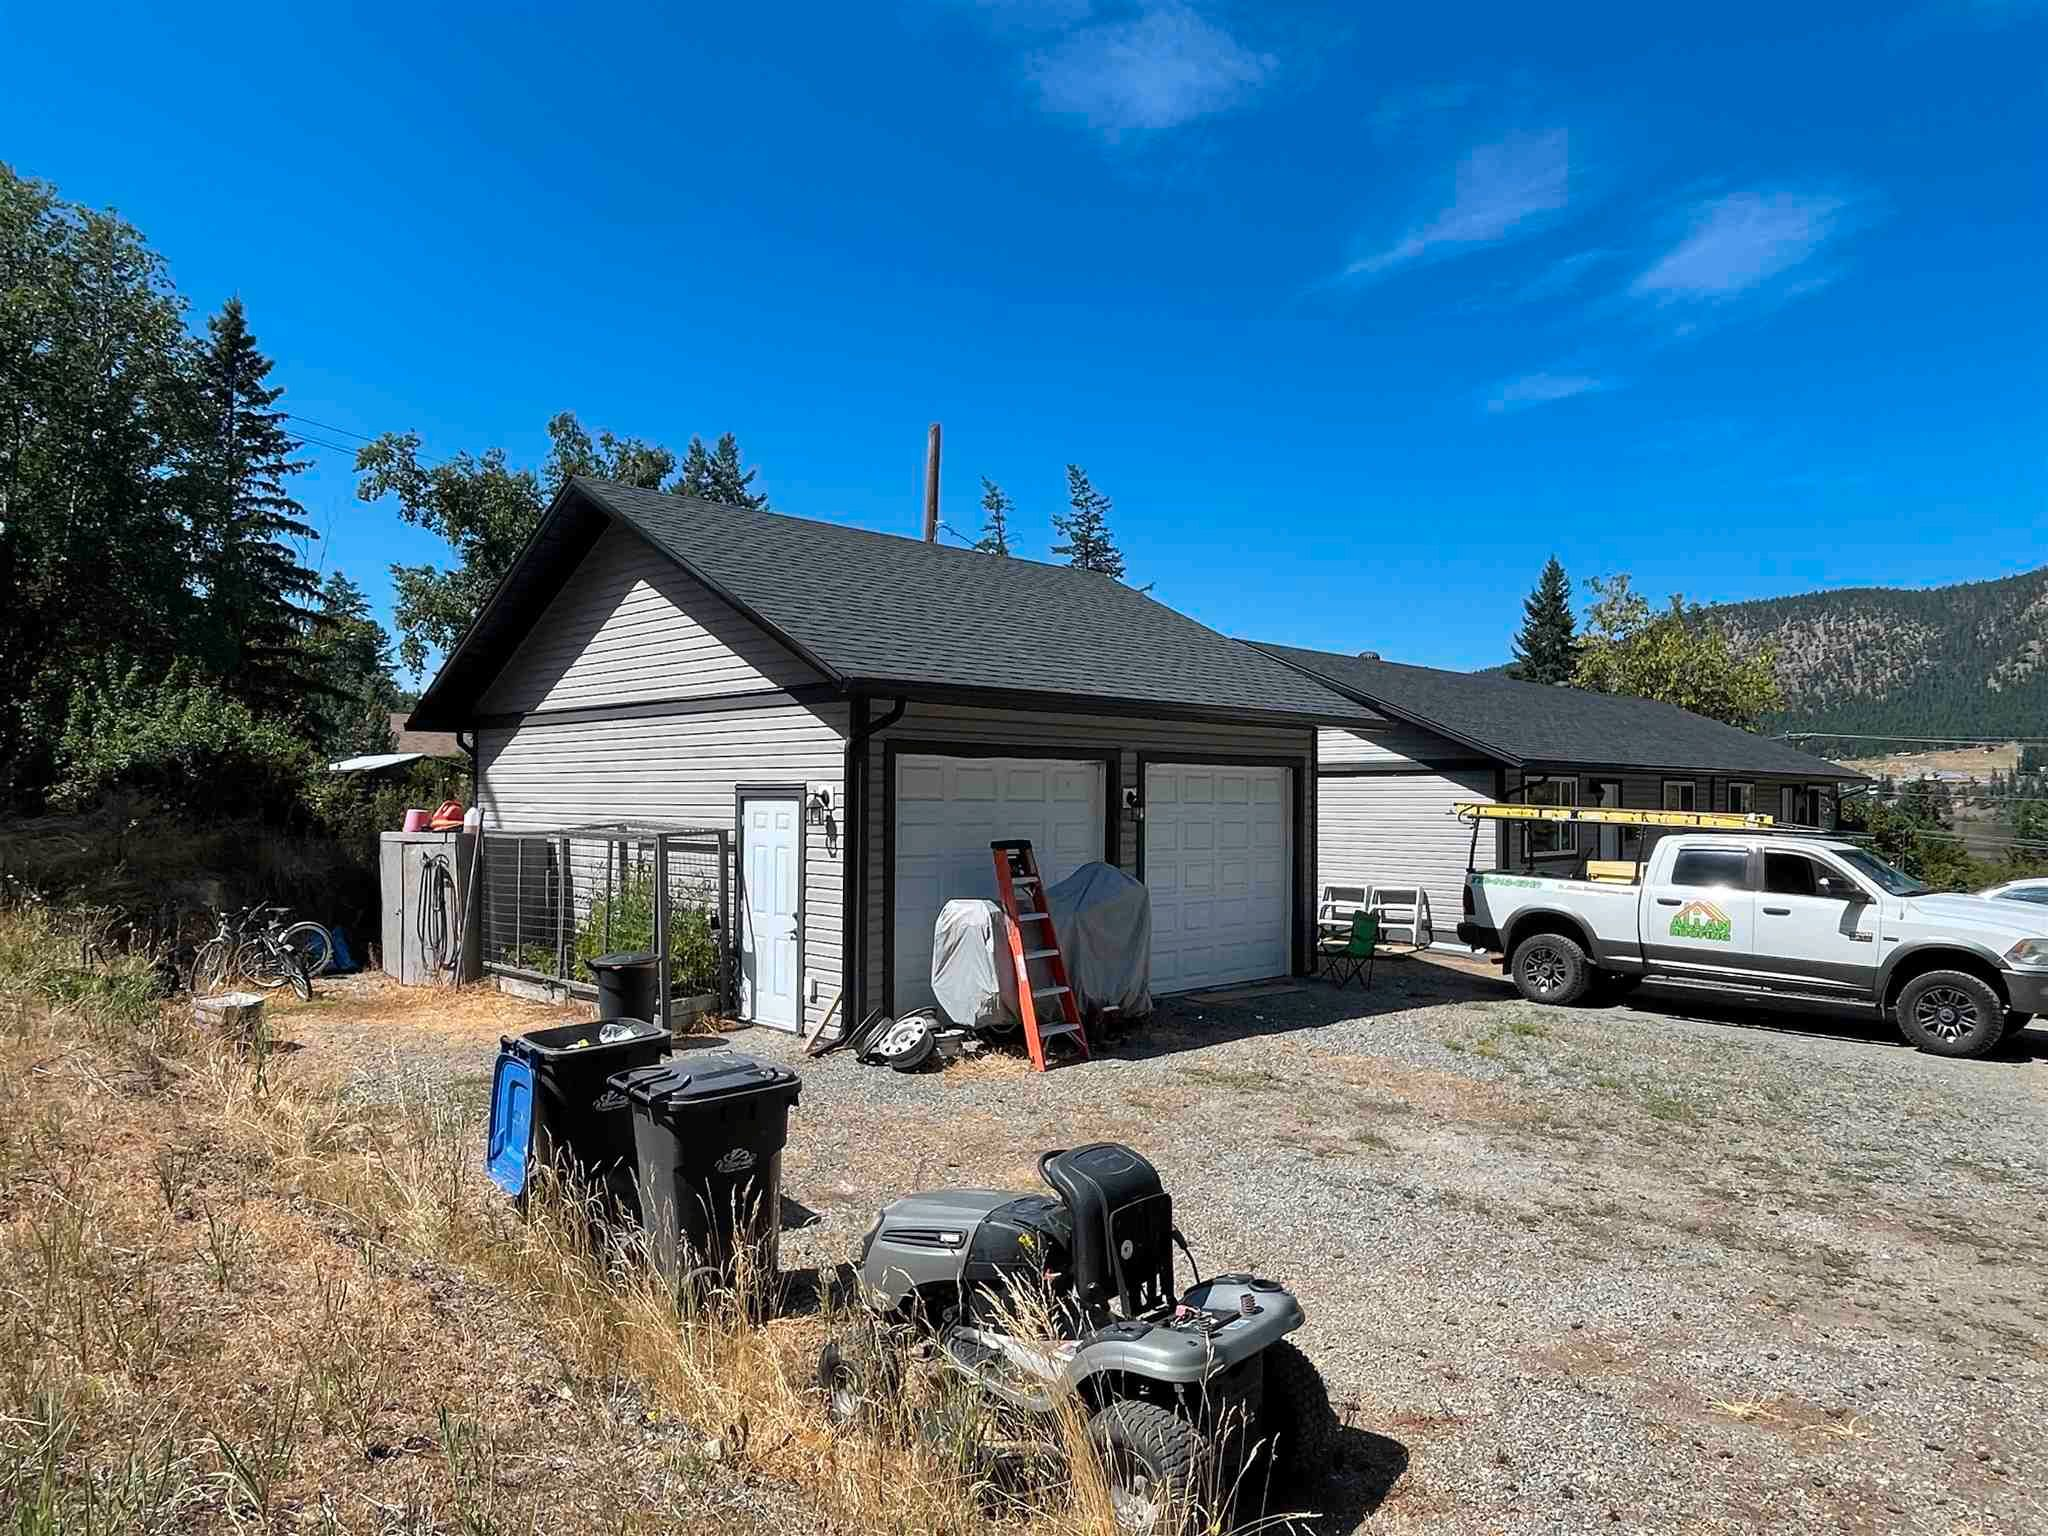 Main Photo: 1611 SOUTH LAKESIDE Drive in Williams Lake: Williams Lake - City Duplex for sale (Williams Lake (Zone 27))  : MLS®# R2607788